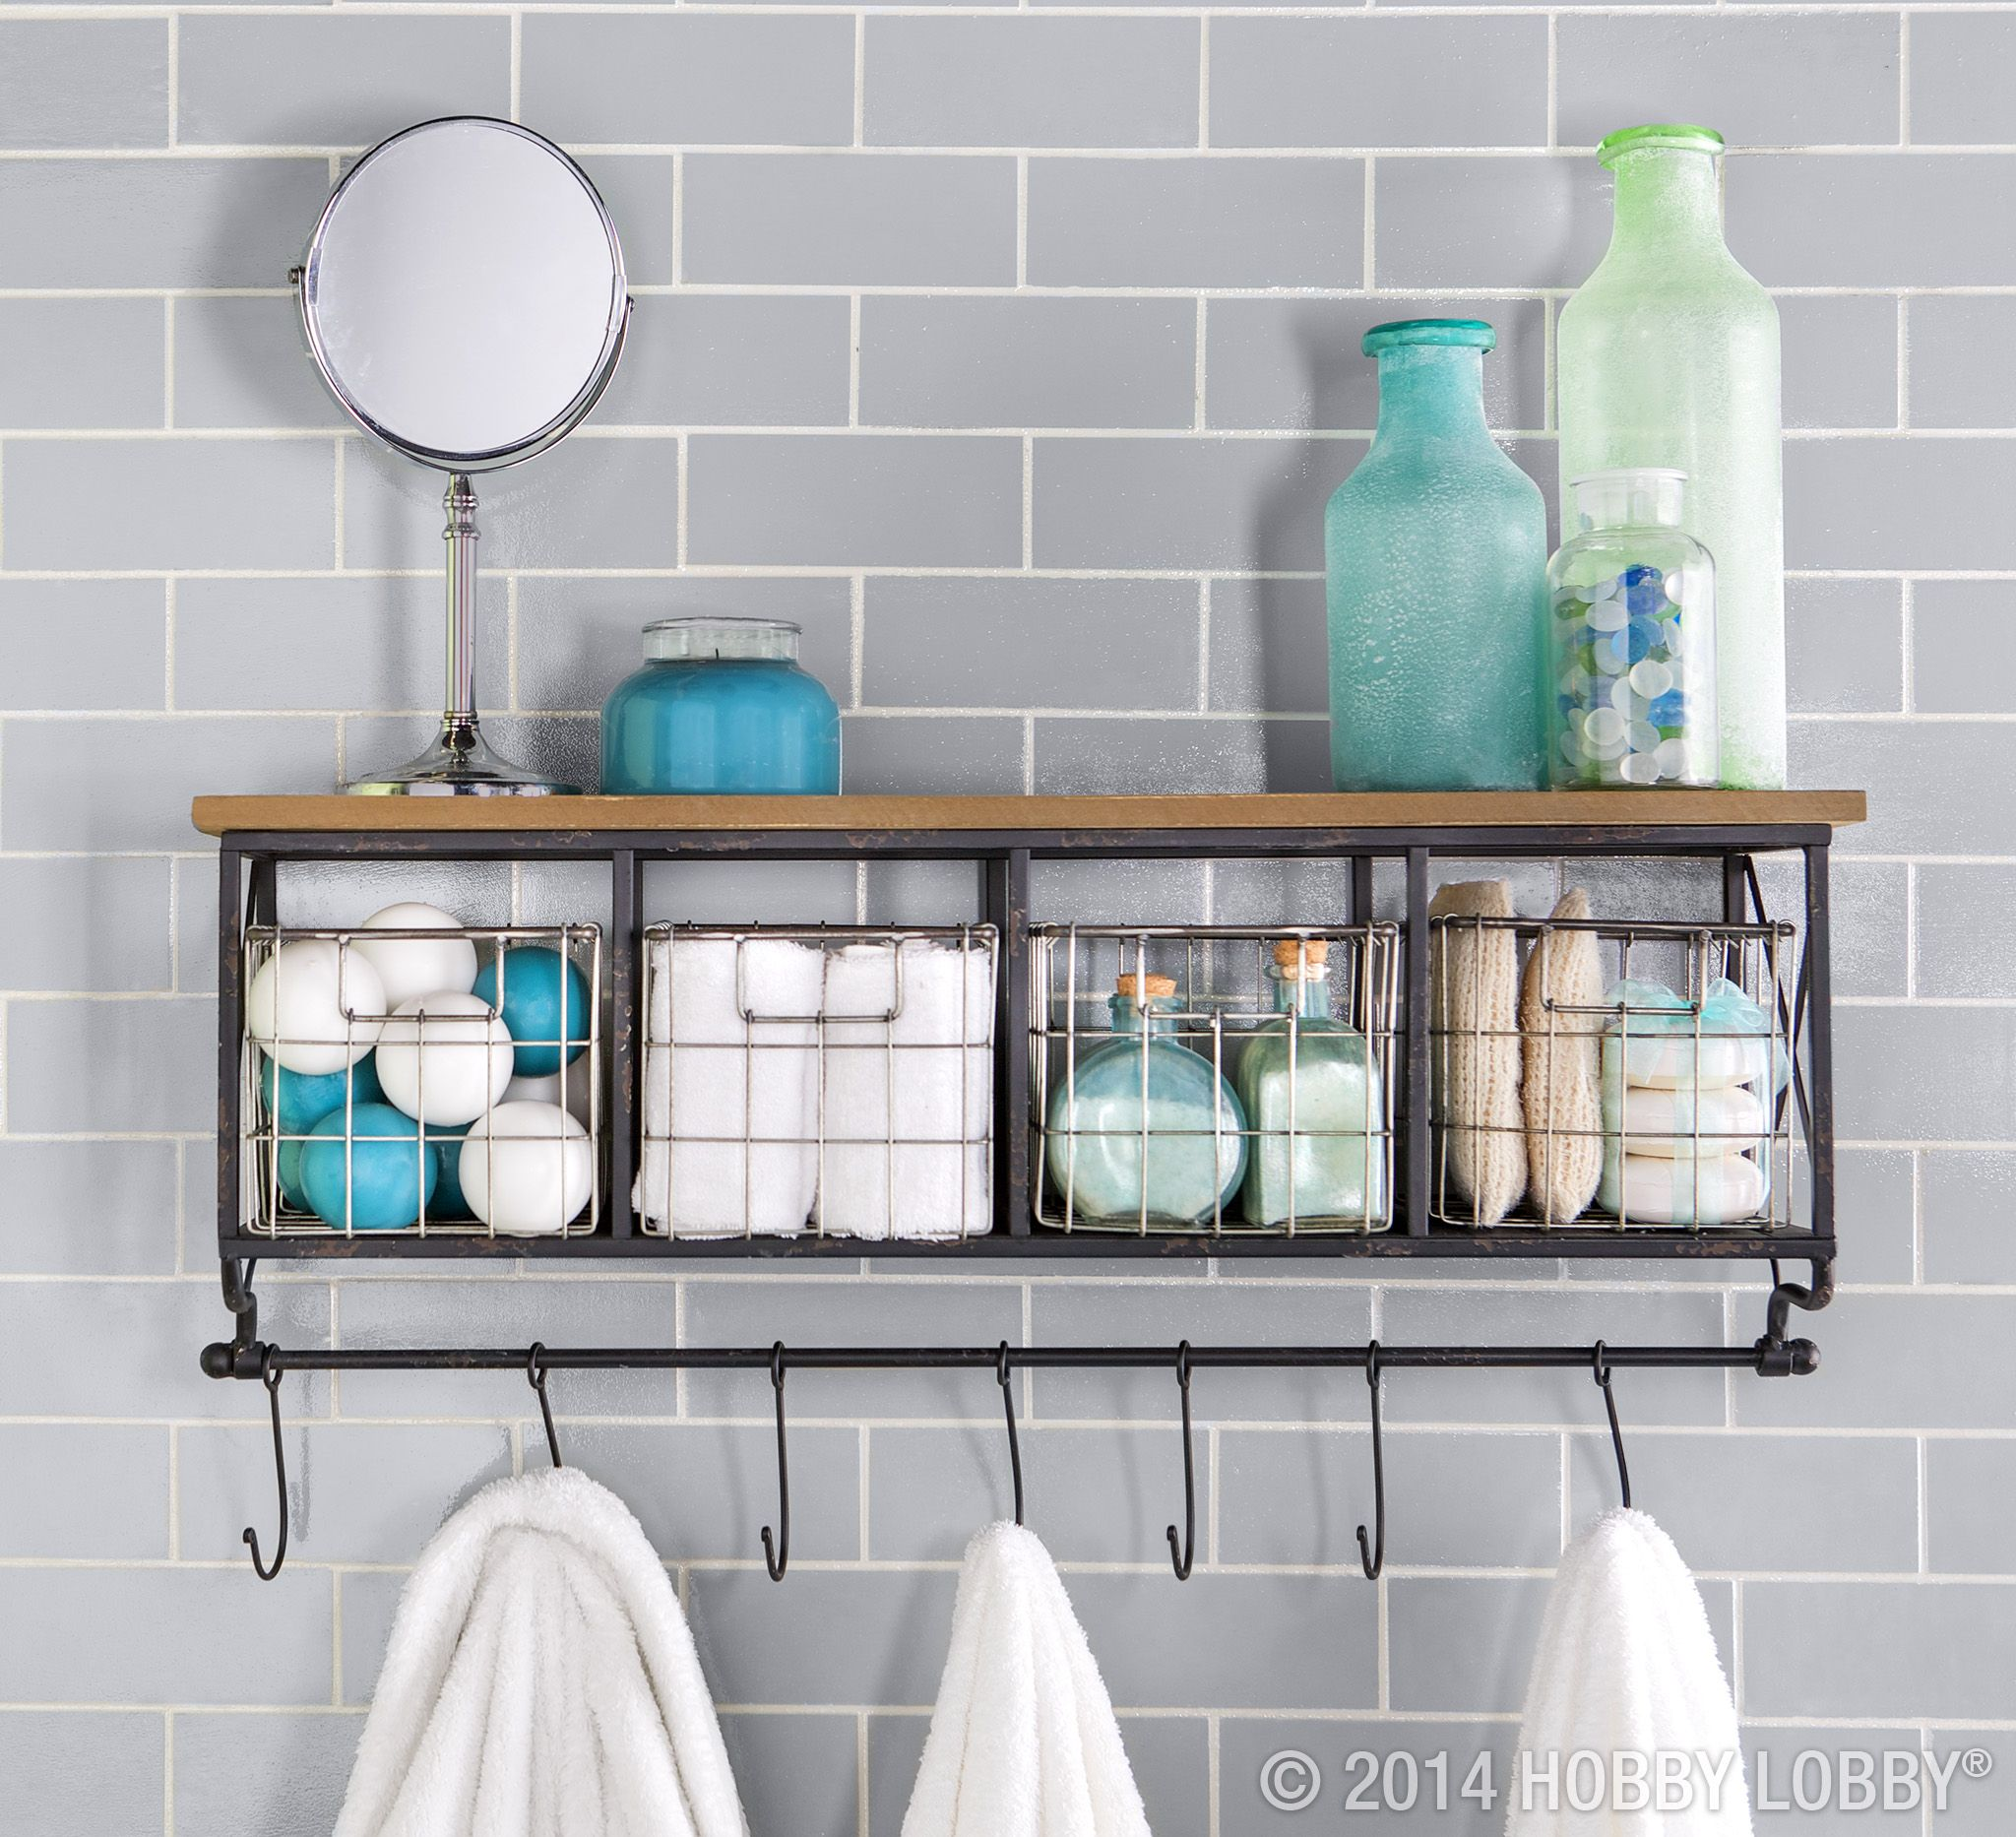 Dining Room Storage Ideas To Keep Your Scheme Clutter Free: Keep The Bathroom Crisp, Clean And Clutter Free With A